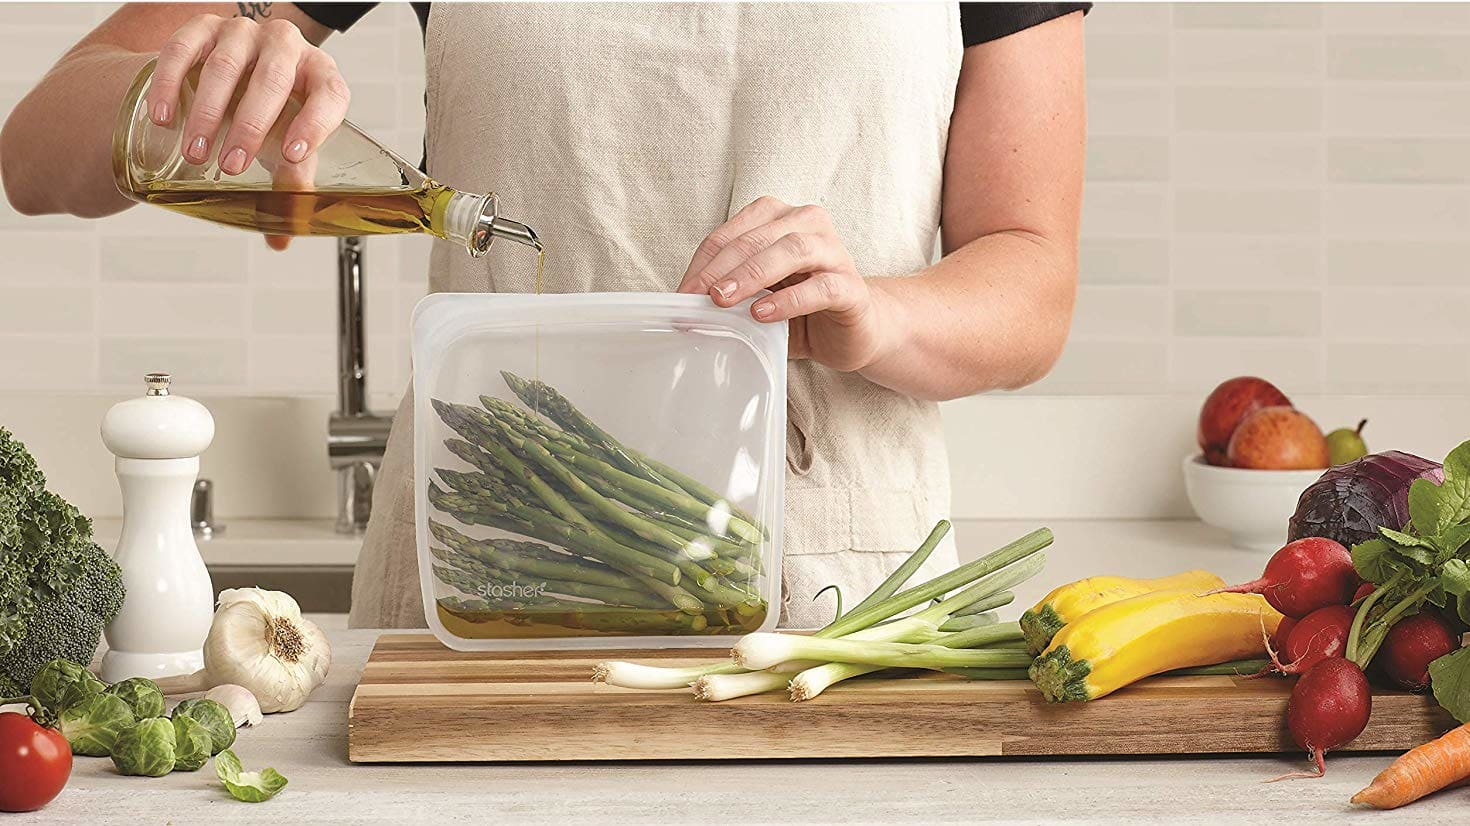 Stasher Bags Are the Best Way to Store and Cook Food — And They're 20% off Right Now